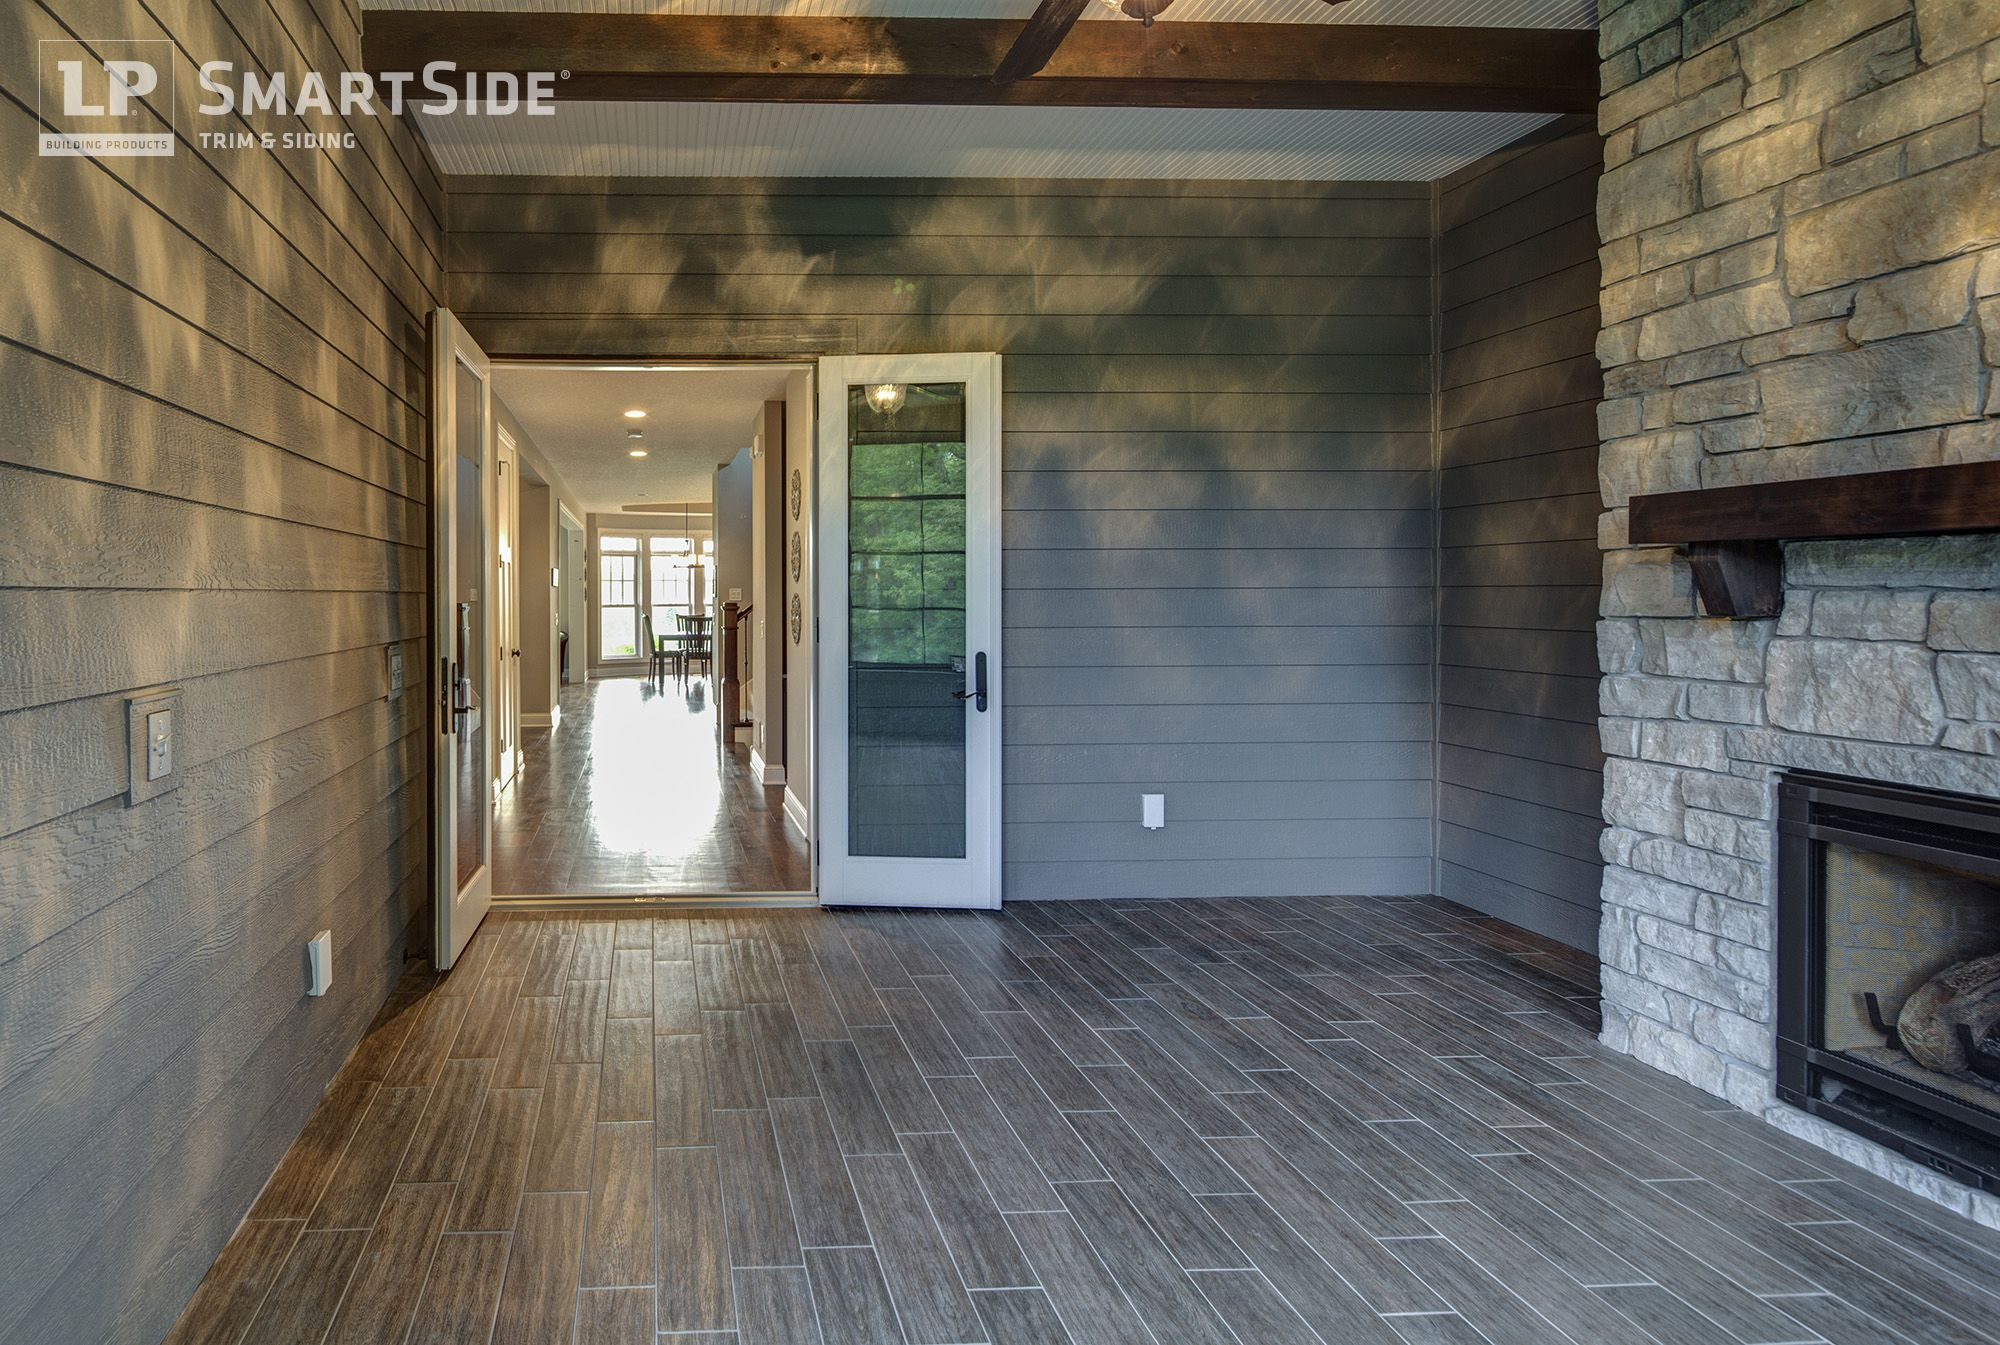 Creative Design Using Lp Smartside Exterior Siding Inside The Home Built By Swanson Homes